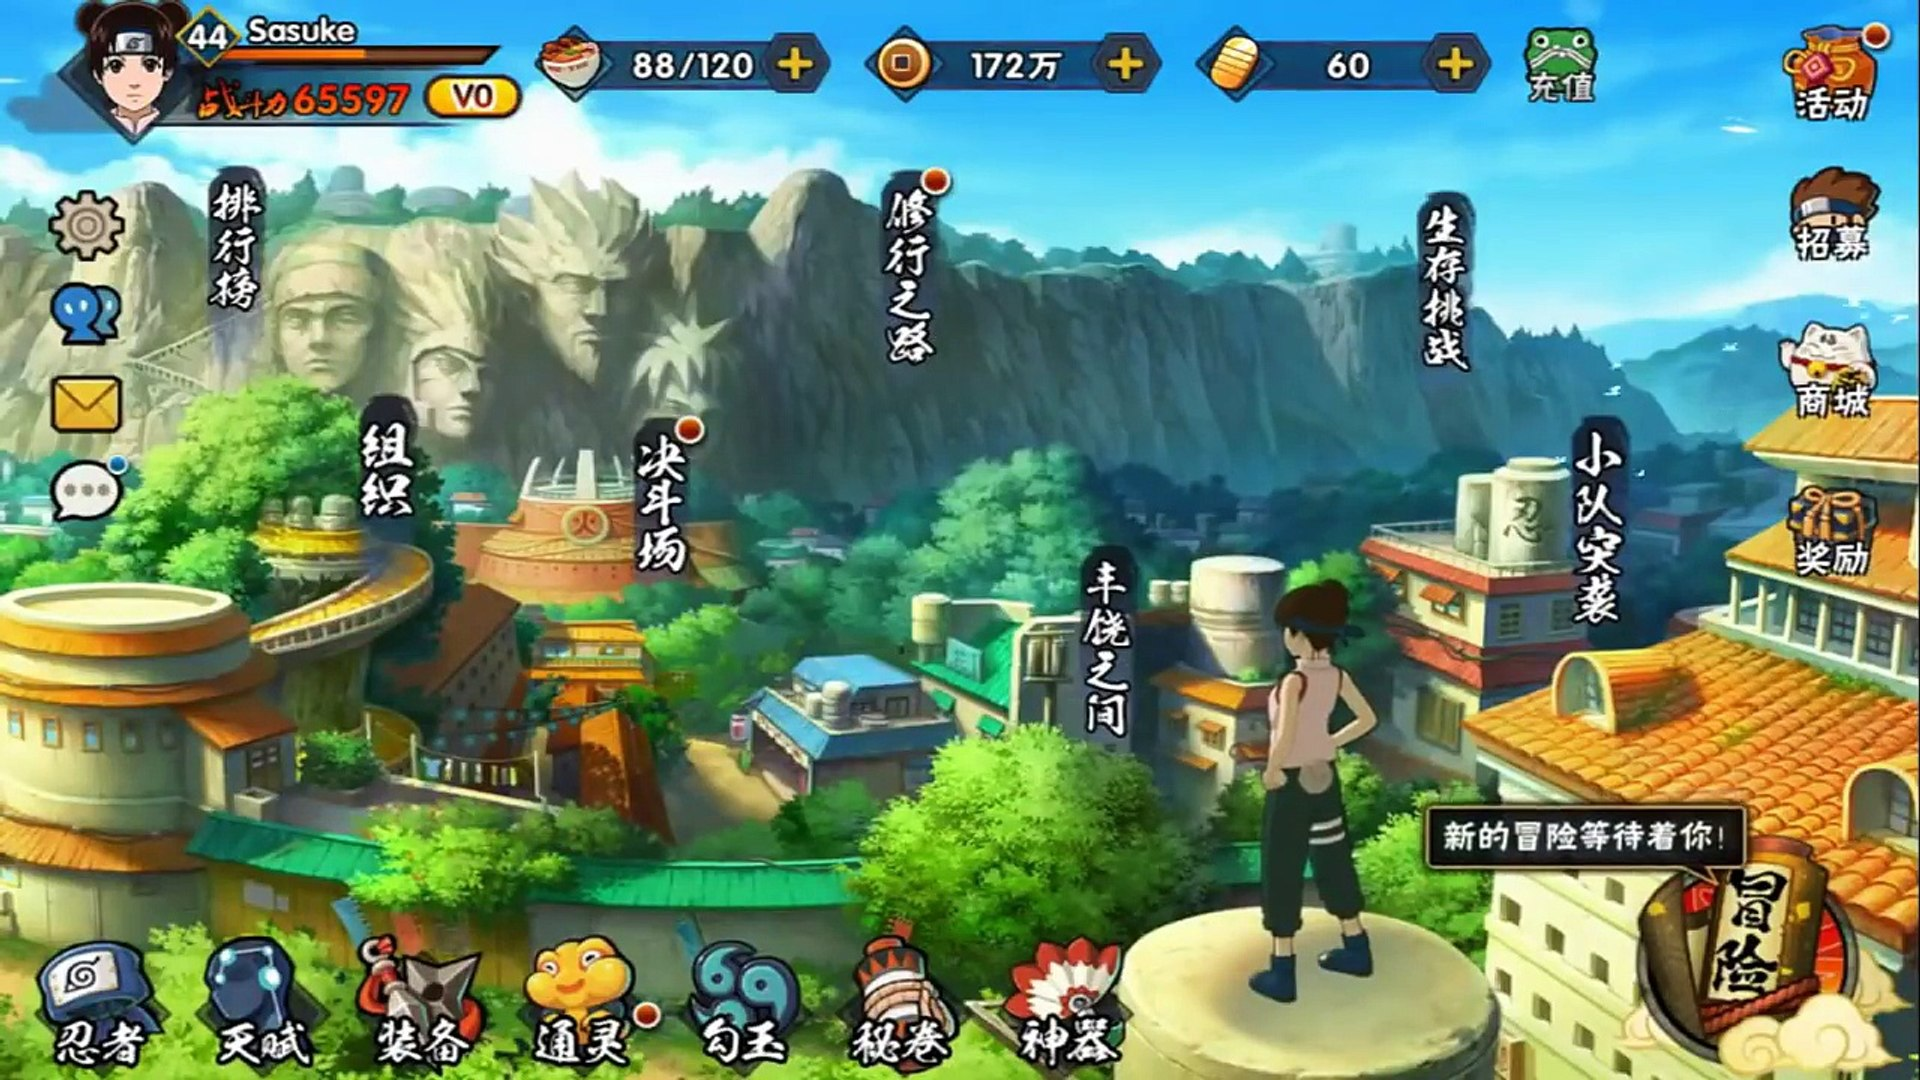 NARUTO MOBILE GAME UPDATE VERSION 2018 (Tencent Game)